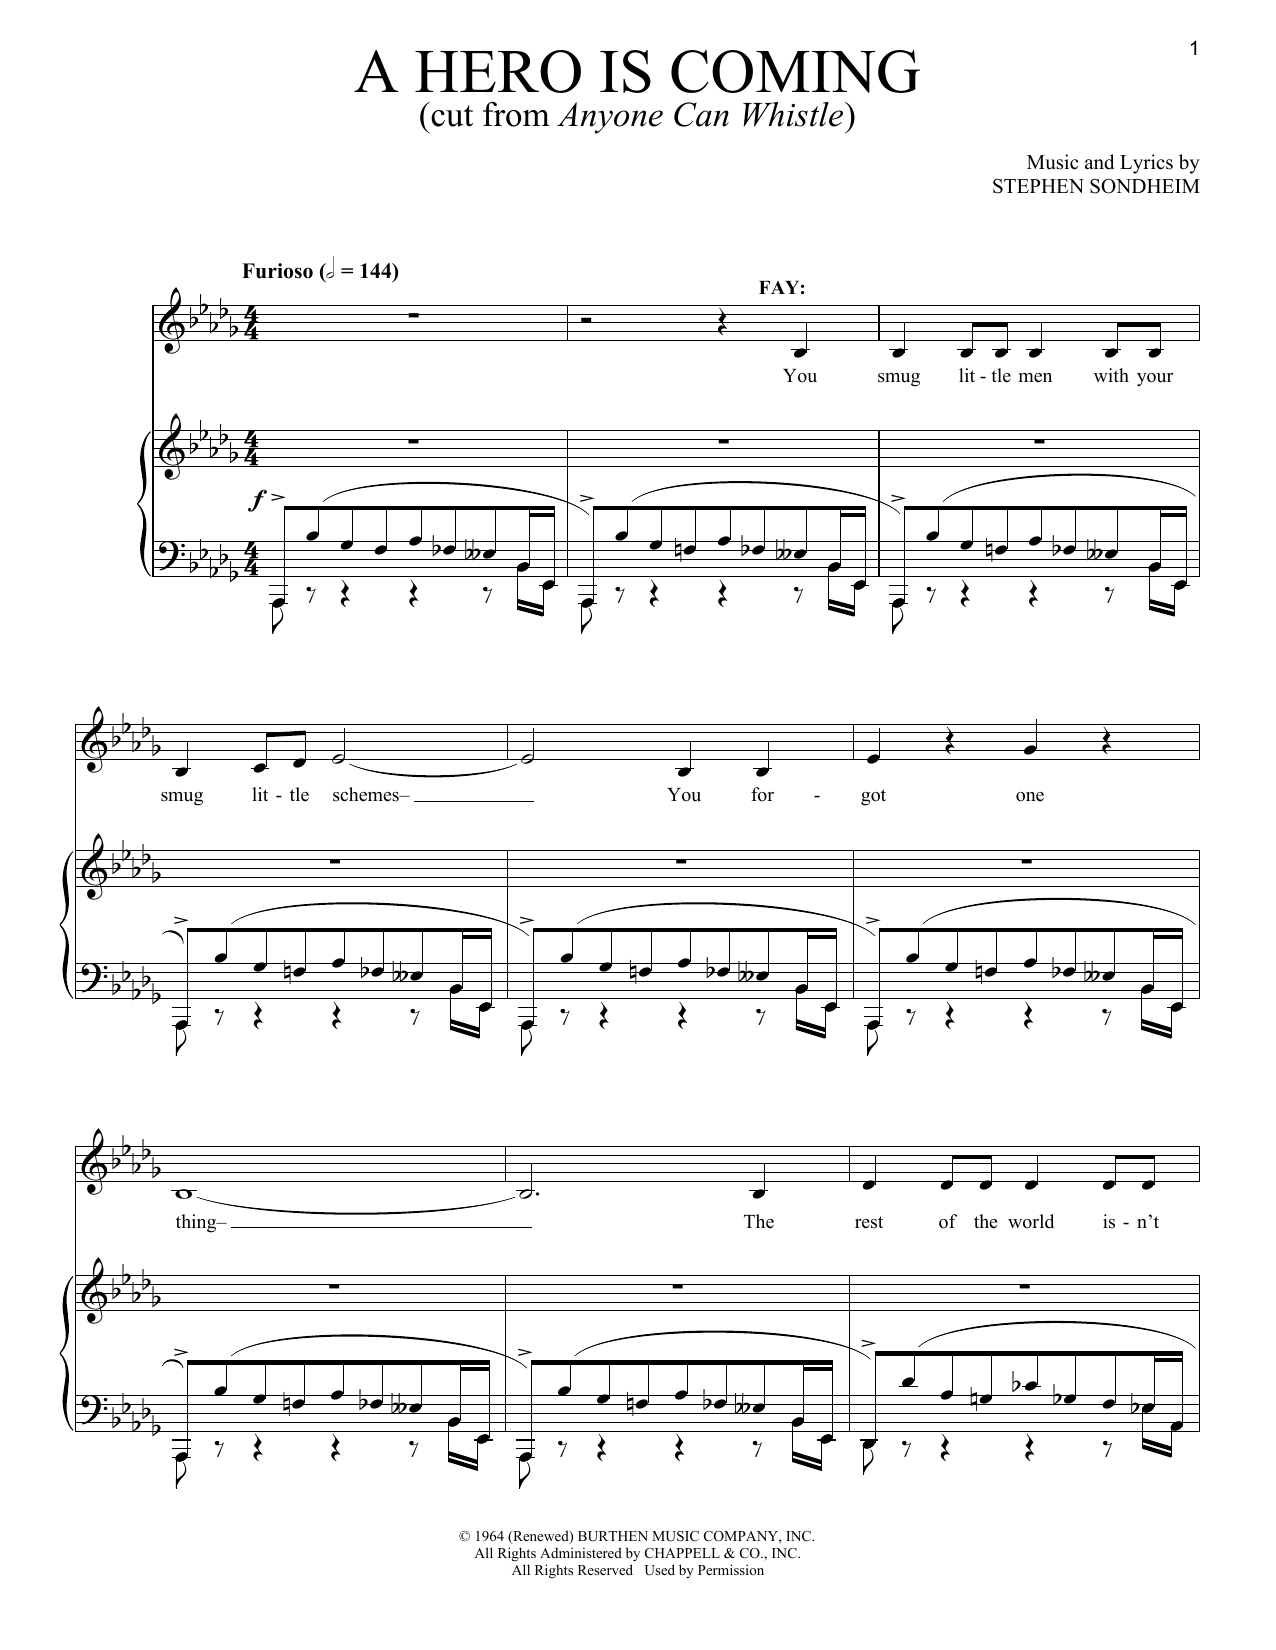 Stephen Sondheim A Hero Is Coming sheet music notes and chords